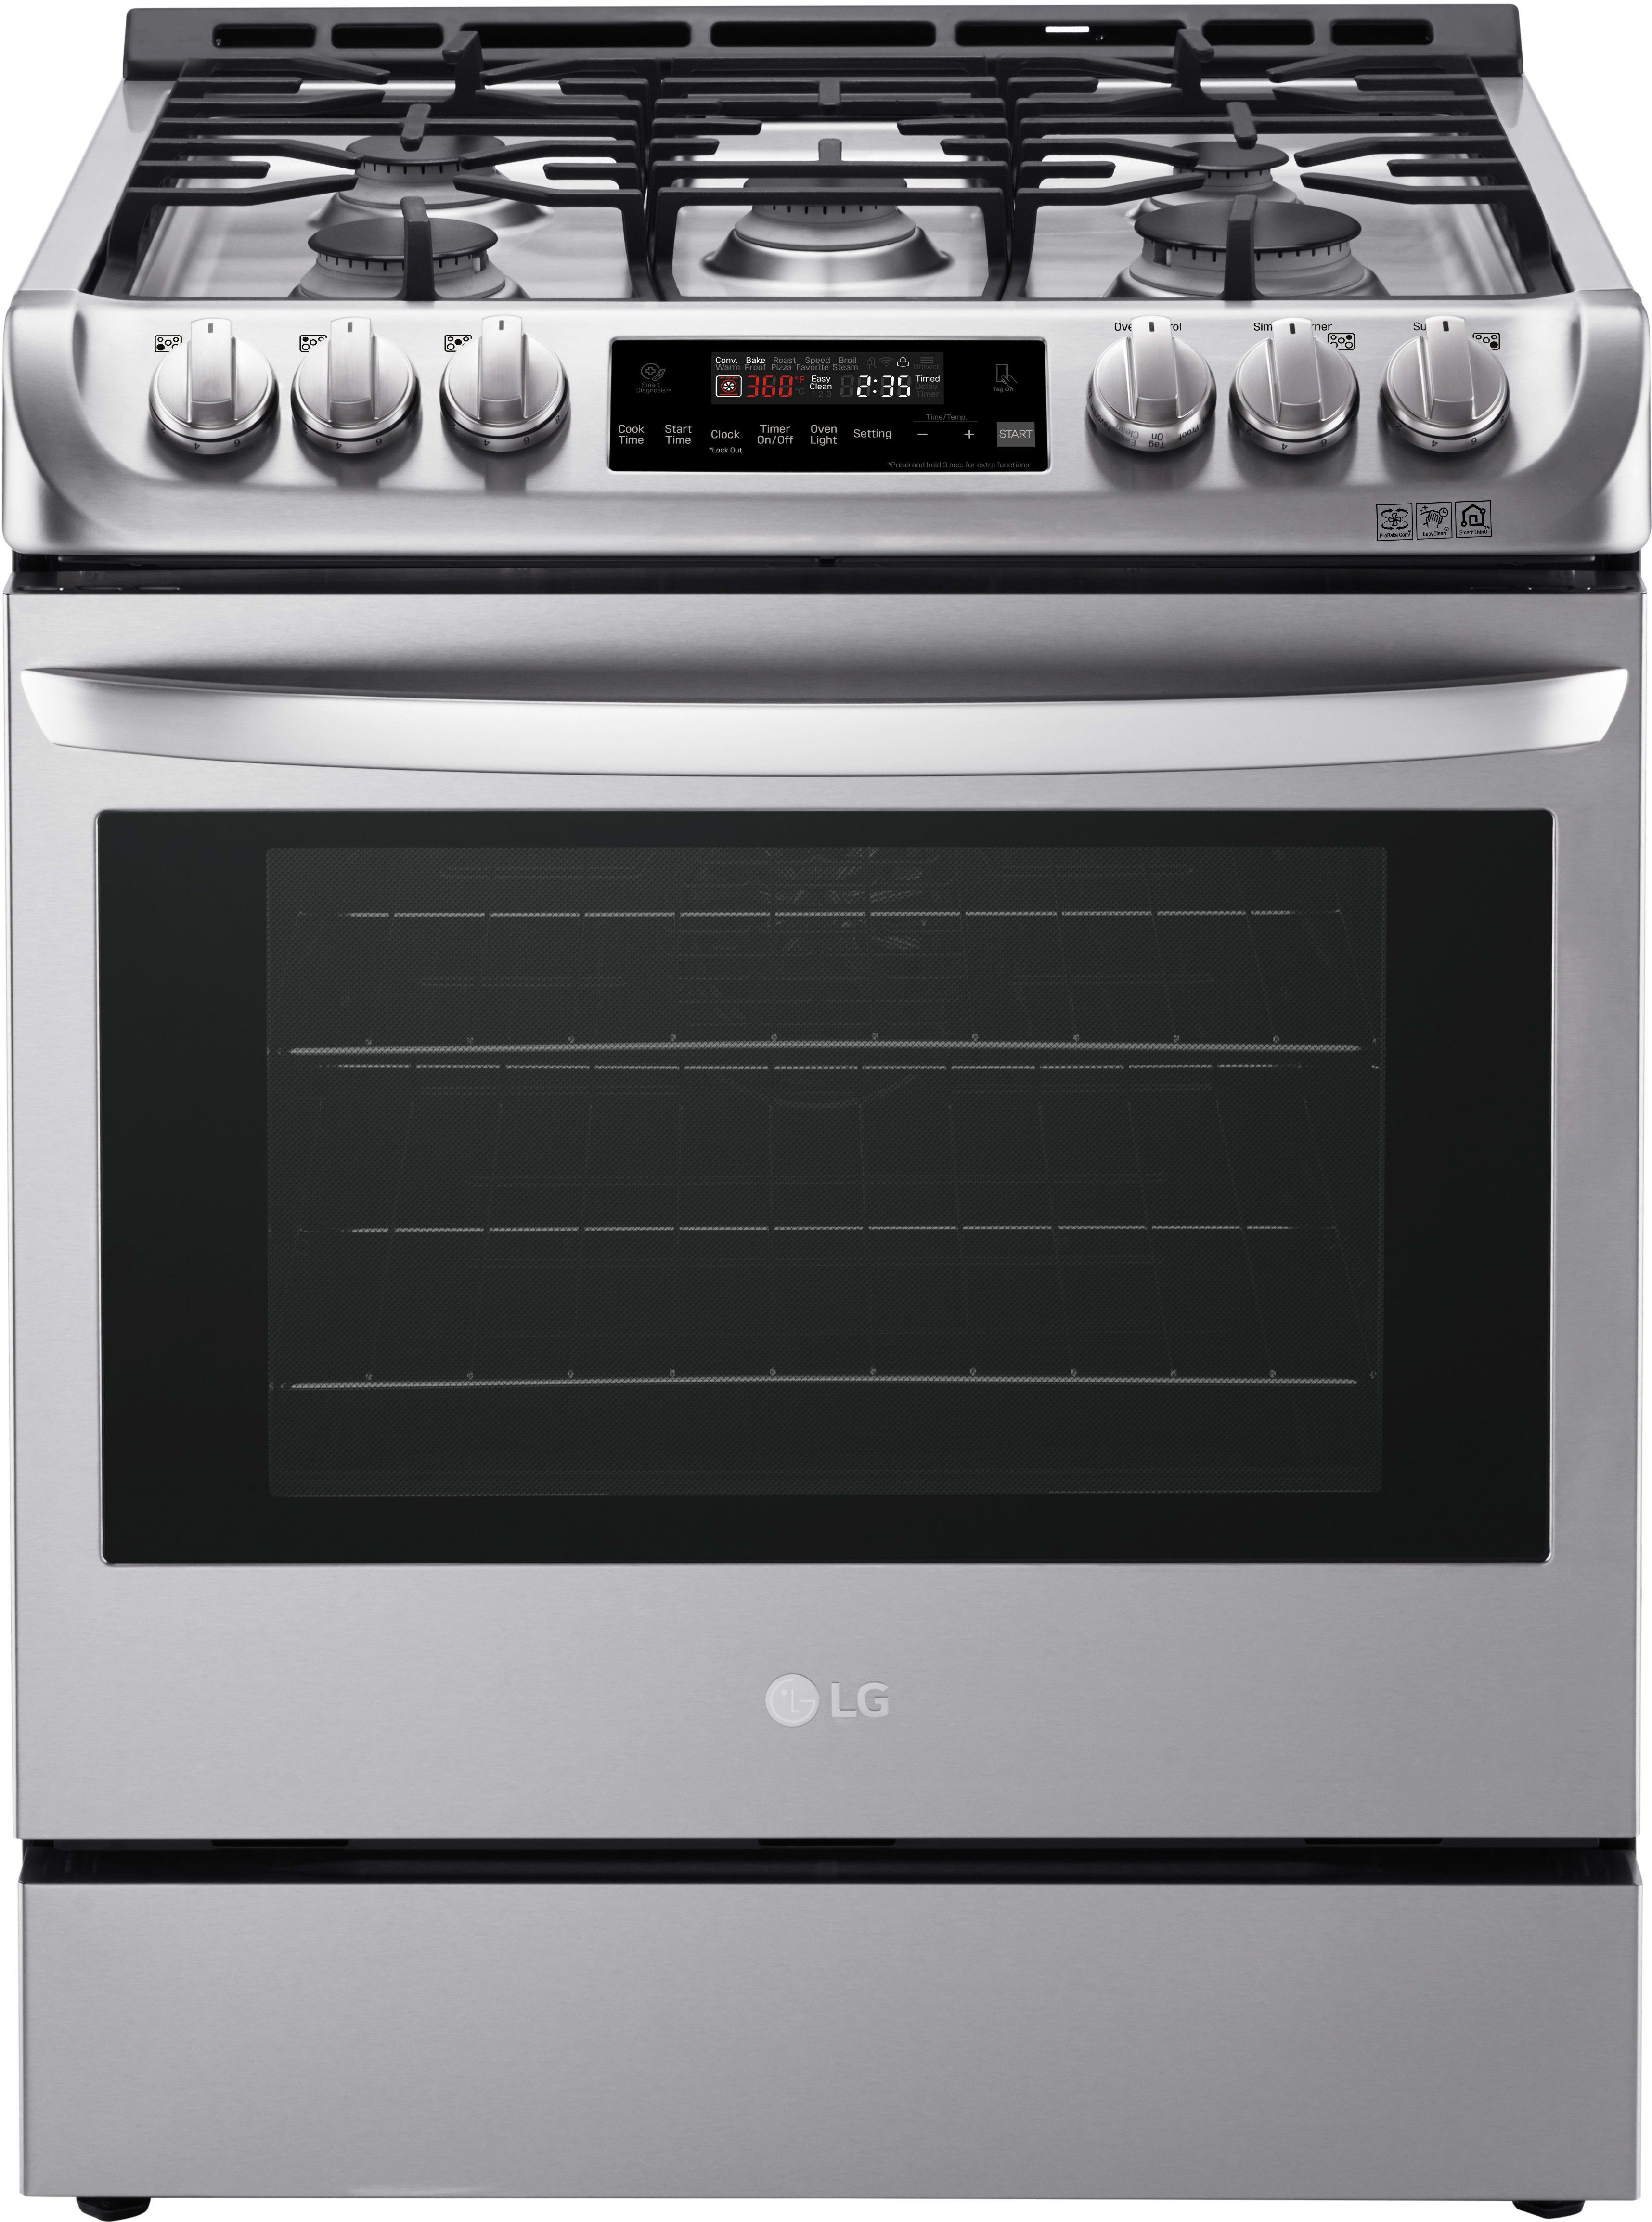 Lg Lsg4511st 30 Inch Gas Slide In Range With 6 3 Cu Ft Capacity